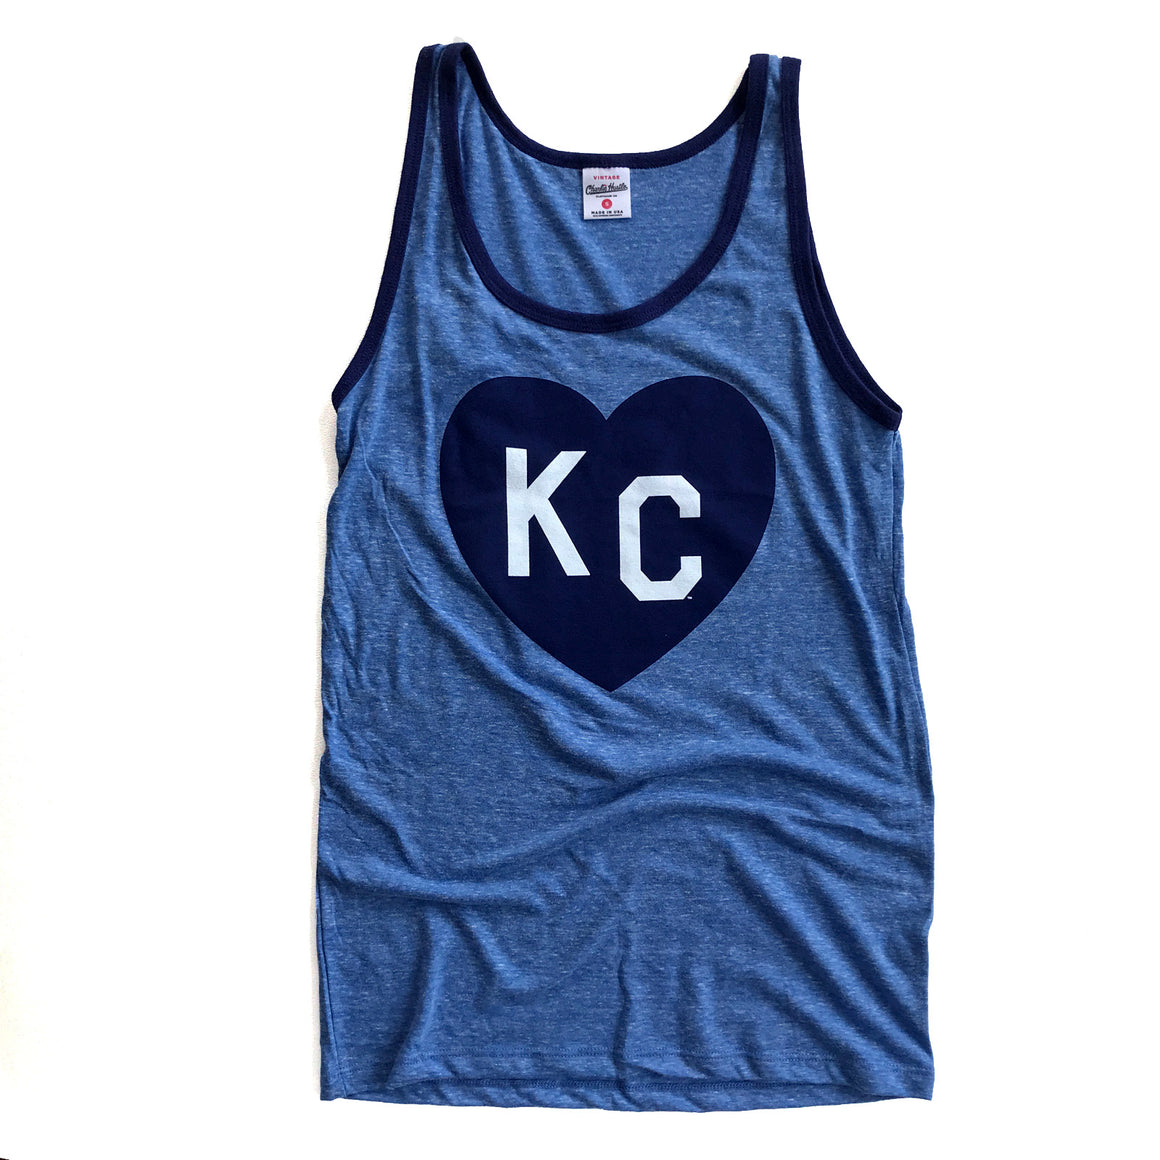 CHARLIE HUSTLE | KC HEART TANK | VINTAGE BLUE/NAVY